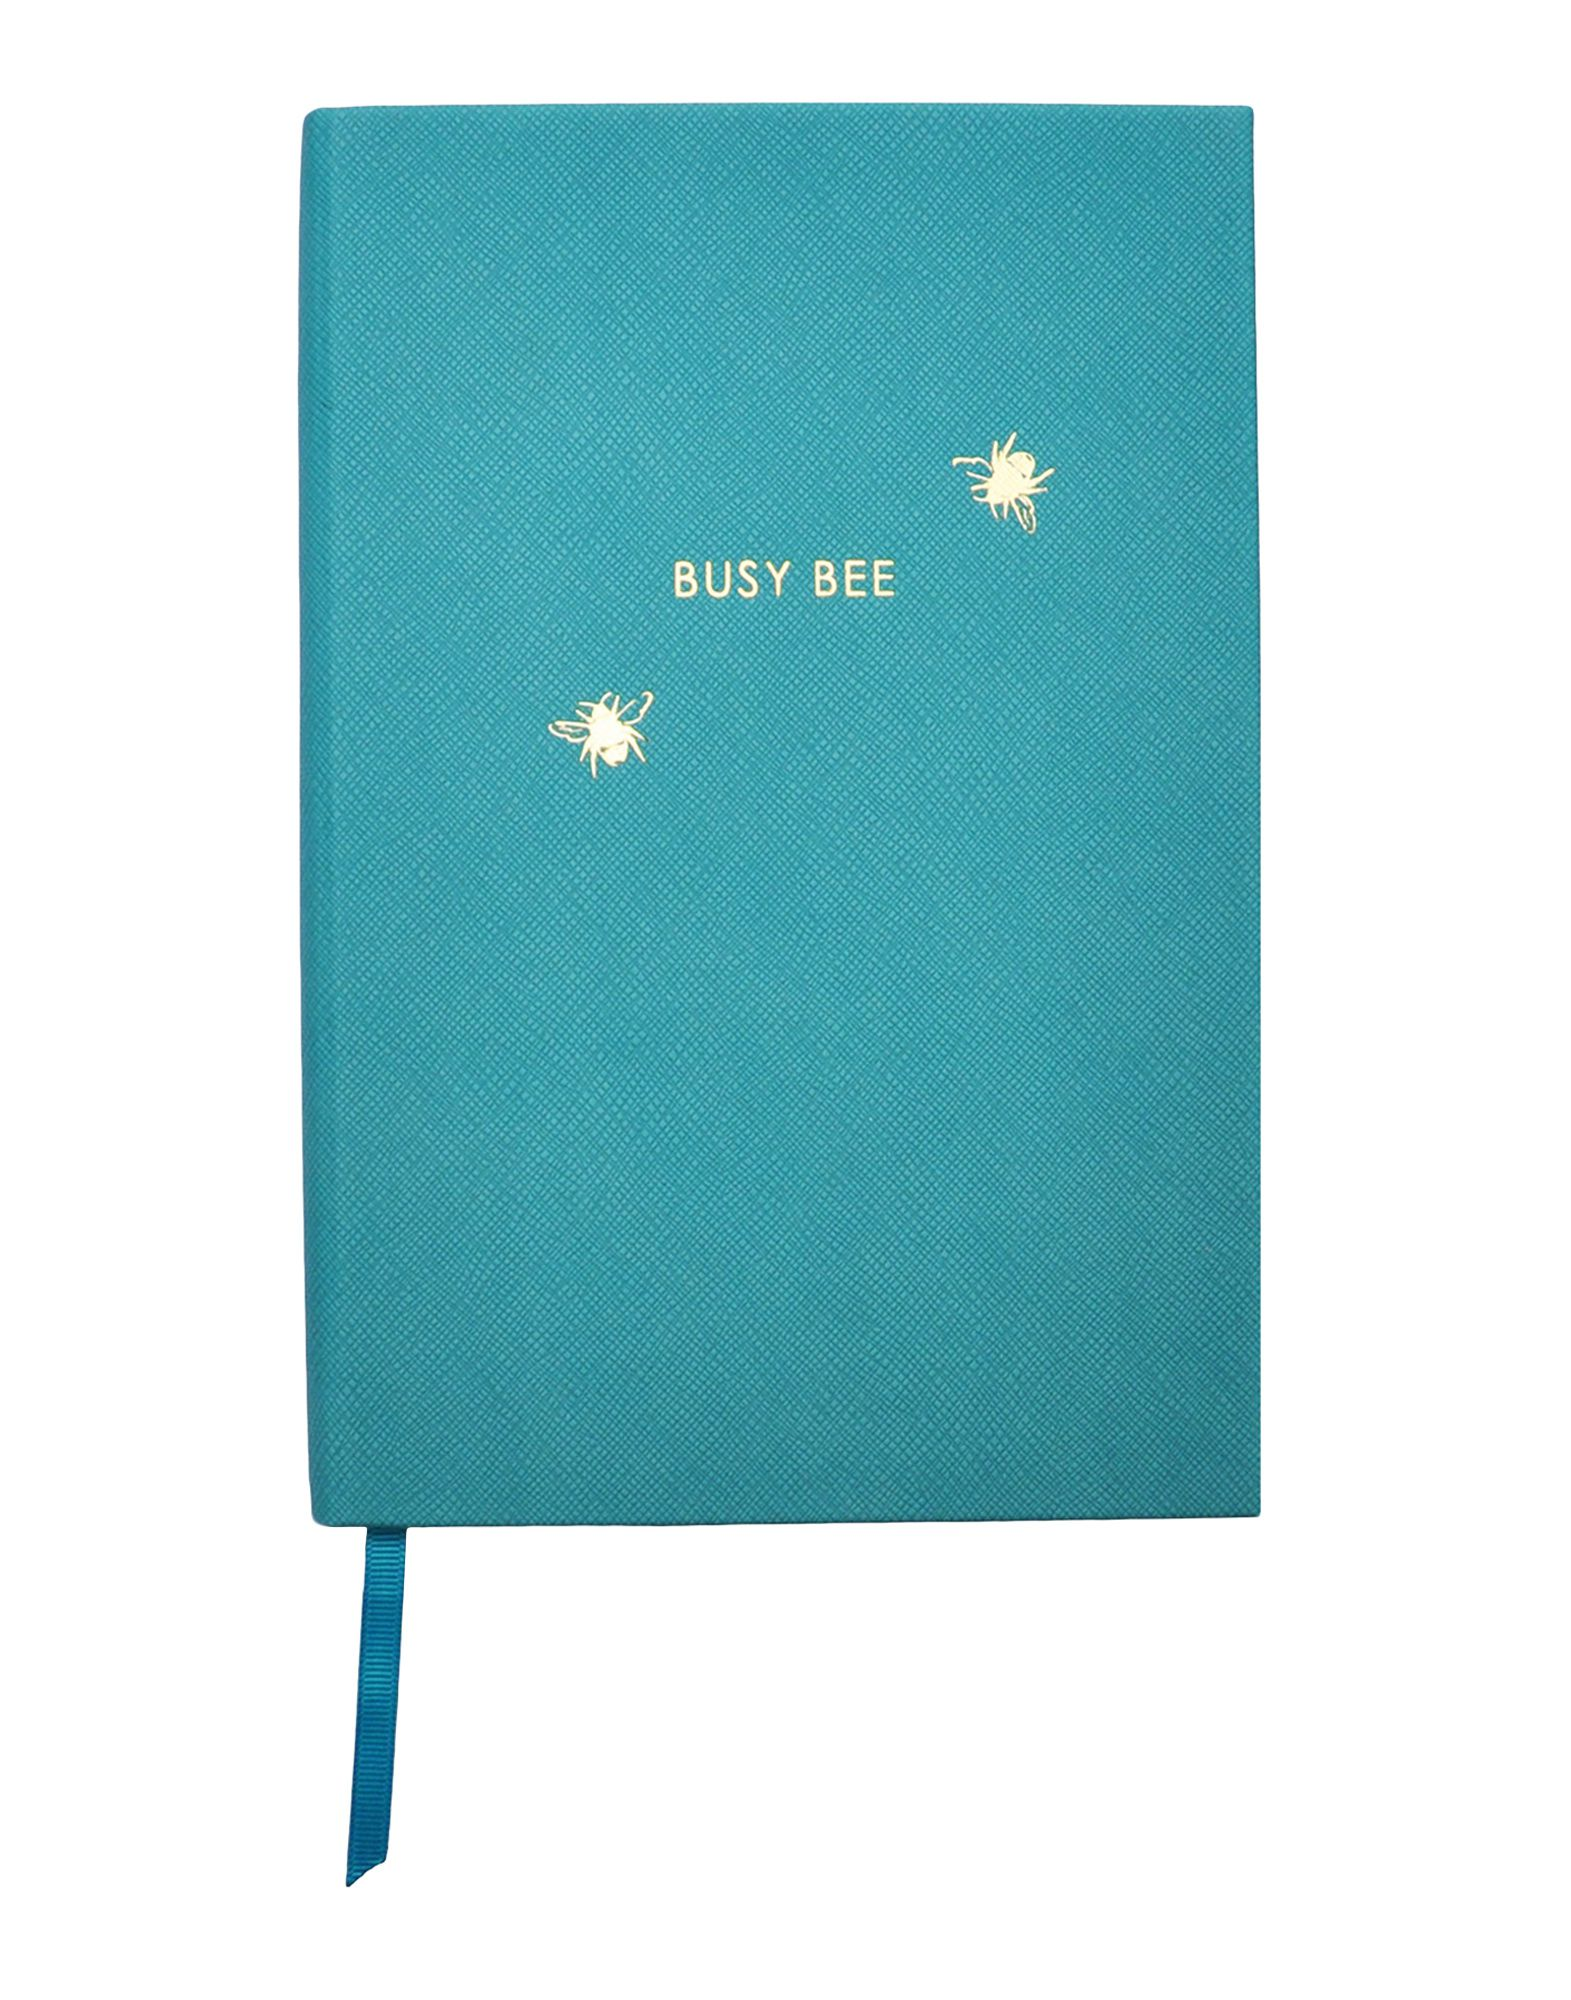 SLOANE STATIONERY Notebooks  Item 56002396 1